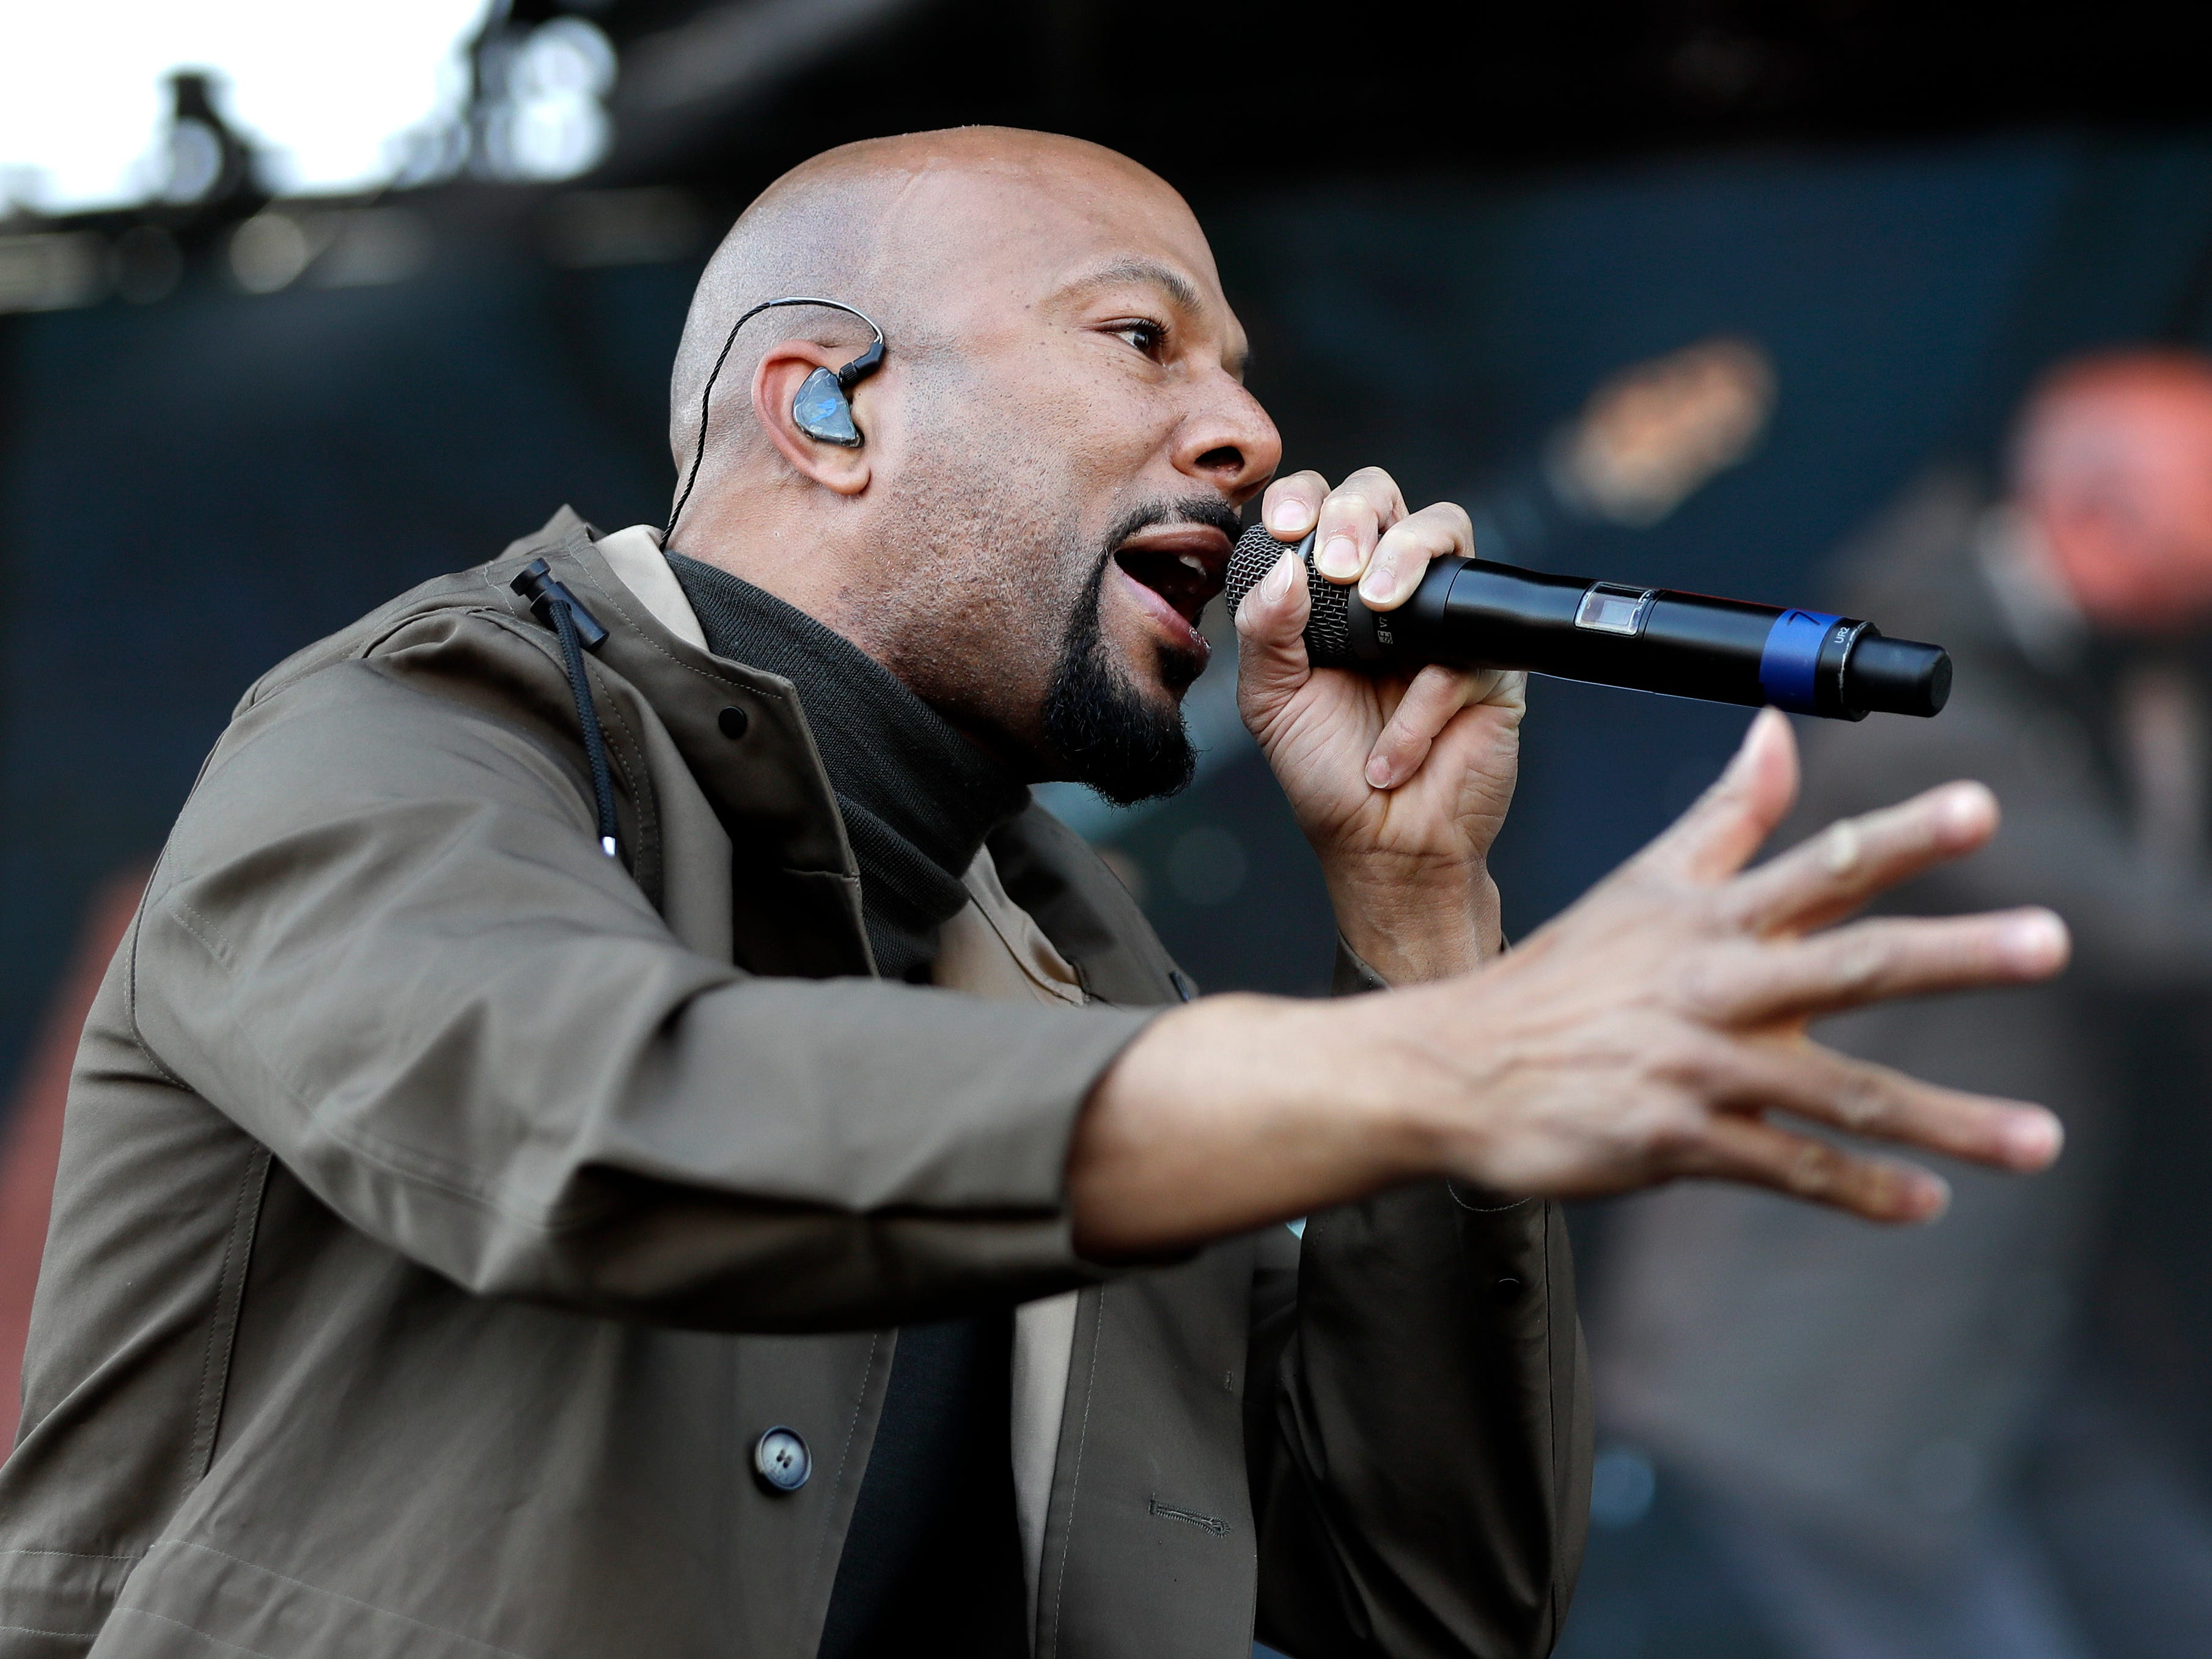 Rapper and actor Common performs at a rally commemorating the 50th anniversary of the assassination of Rev. Martin Luther King Jr. Wednesday, April 4, 2018, in Memphis, Tenn. King was assassinated April 4, 1968, while in Memphis supporting striking sanitation workers. (AP Photo/Mark Humphrey) ORG XMIT: TNMH116